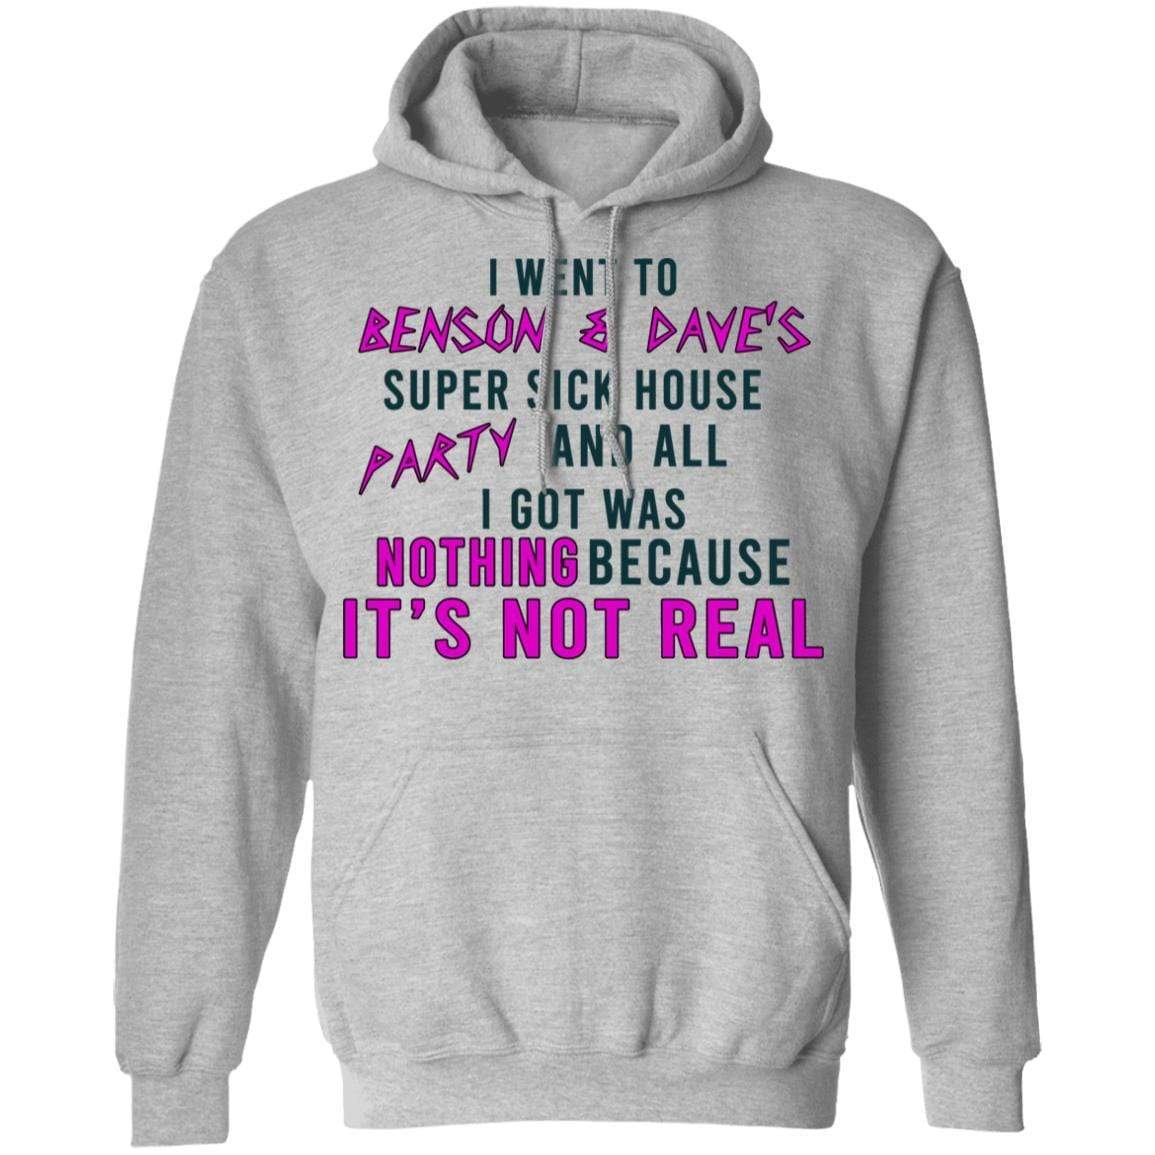 I Went To Benson & Dave's Super Sick House Party And All I Got Was Nothing Because It's Not Real T-Shirts, Hoodies 541-4741-87390857-23111 - Tee Ript